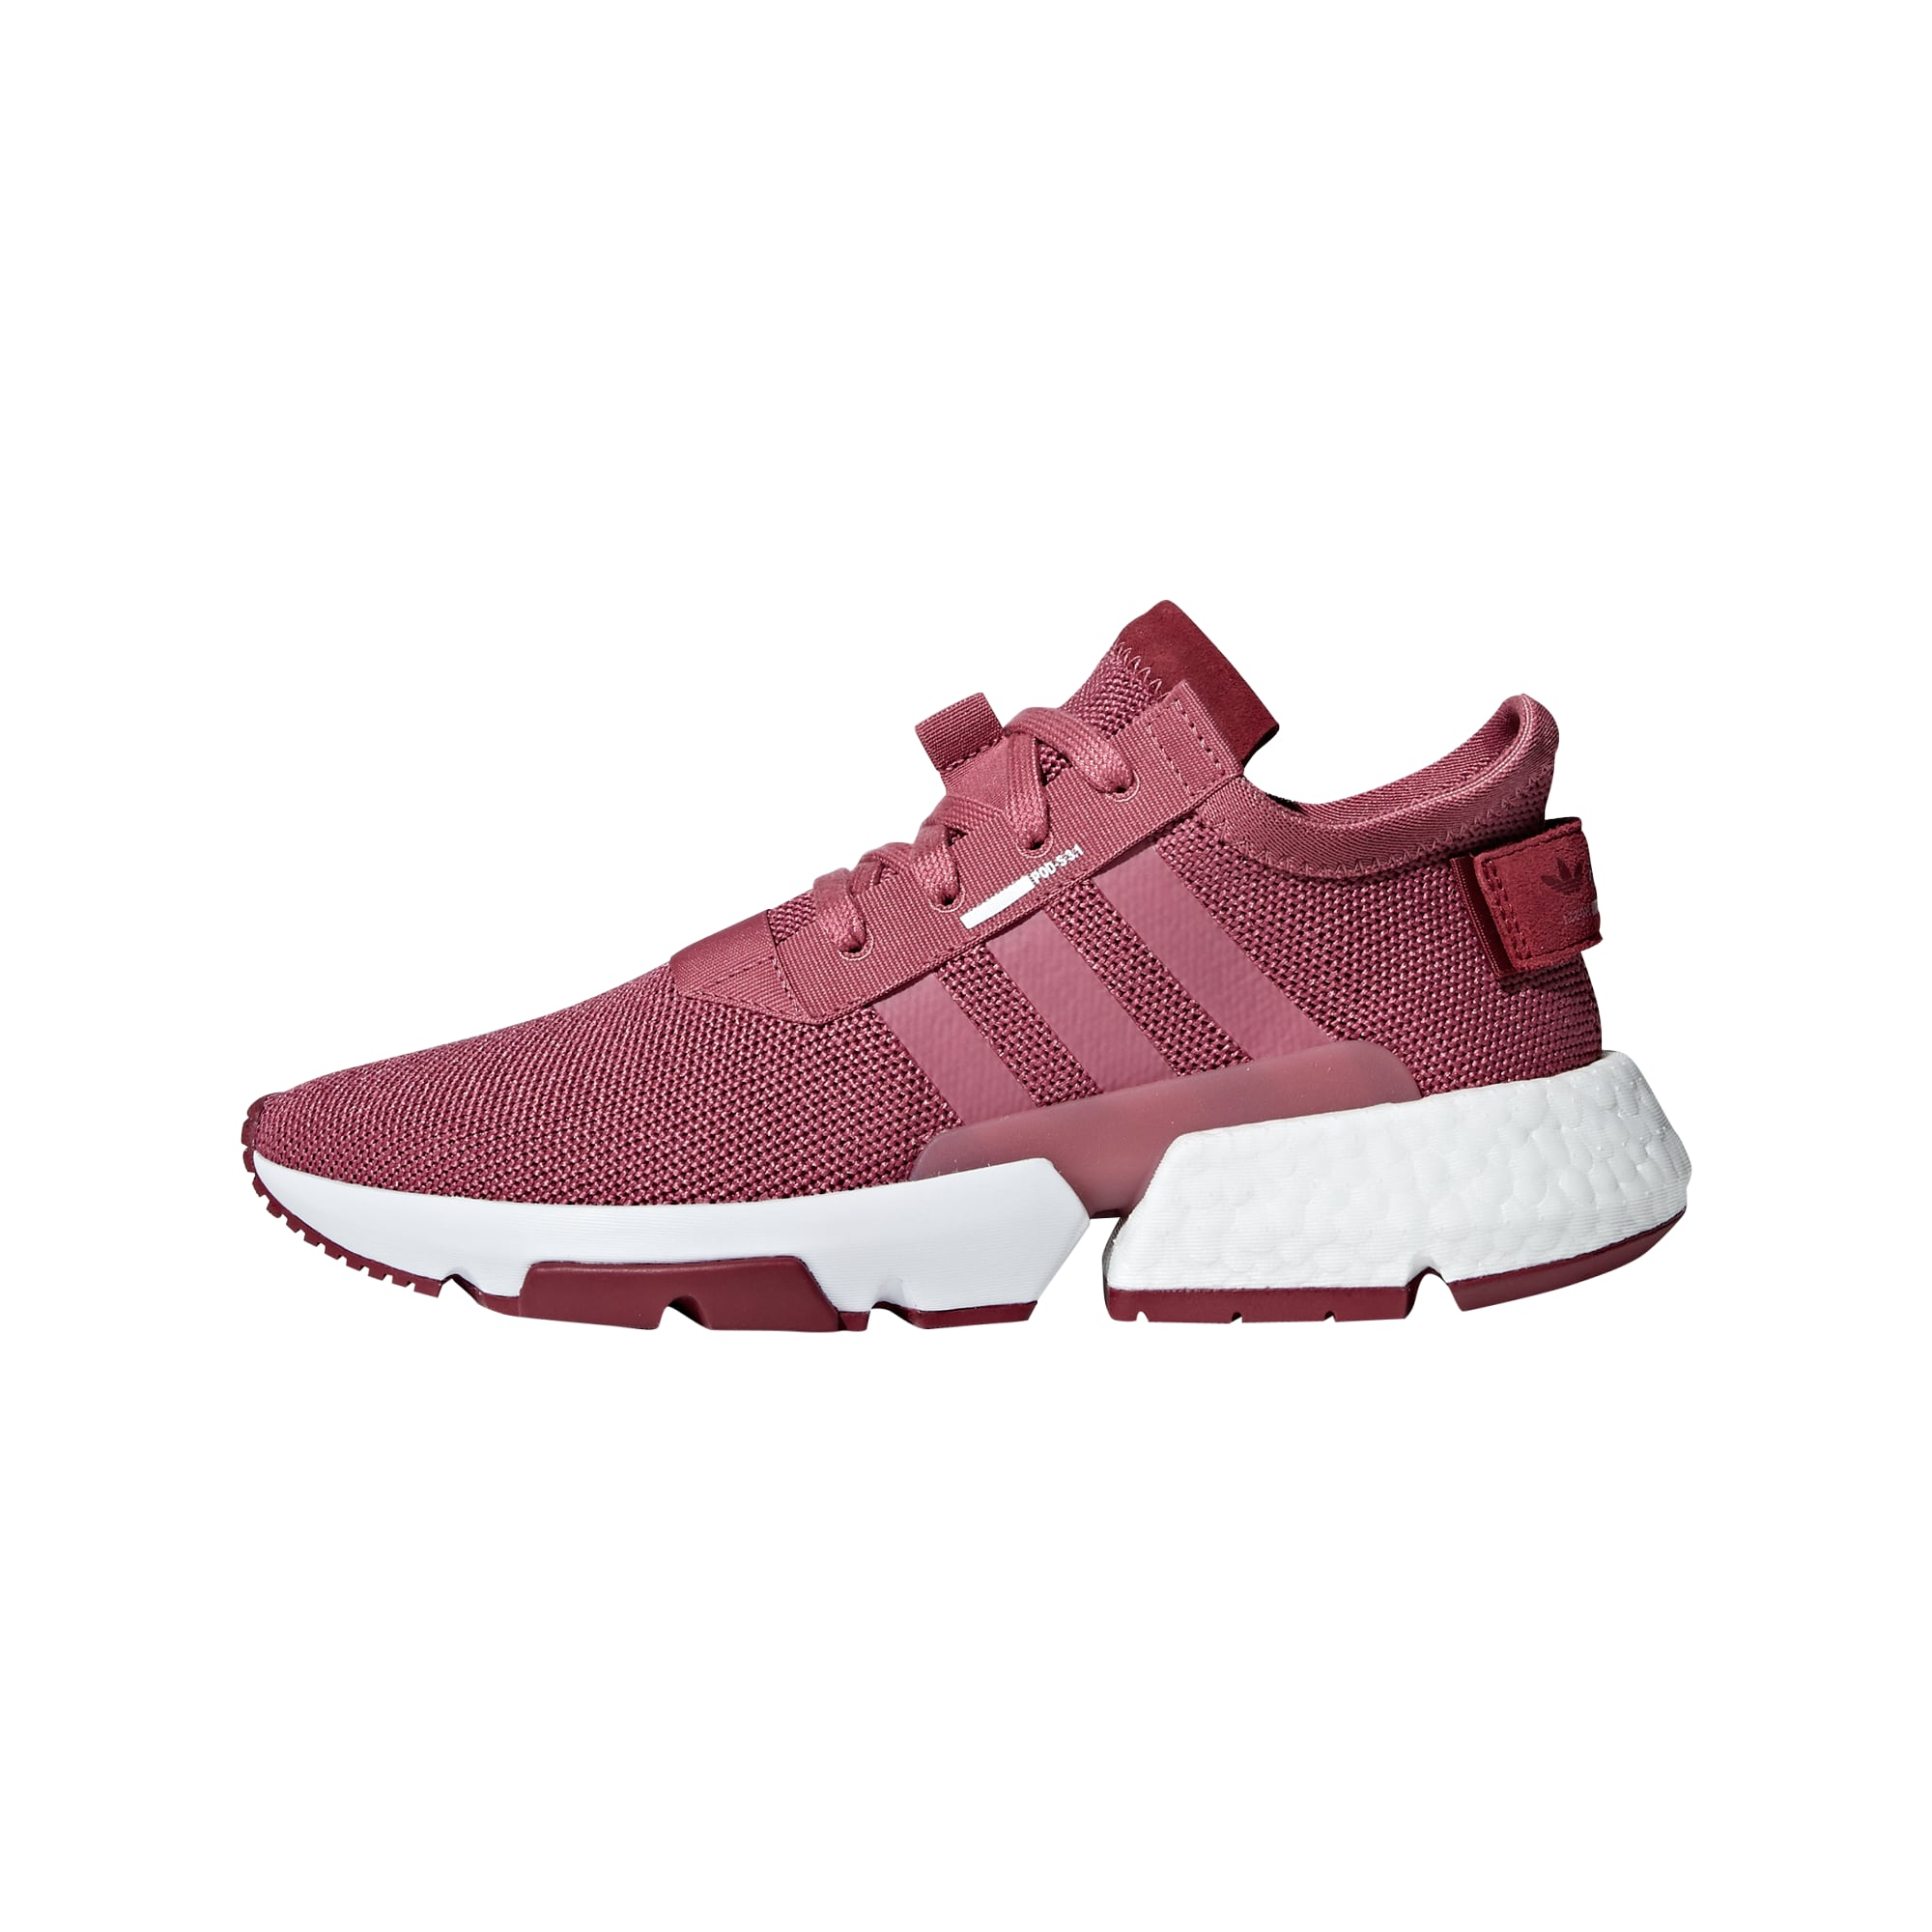 ADIDAS ORIGINALS, Dames Sneakers laag 'POD-S3.1 W', bordeaux